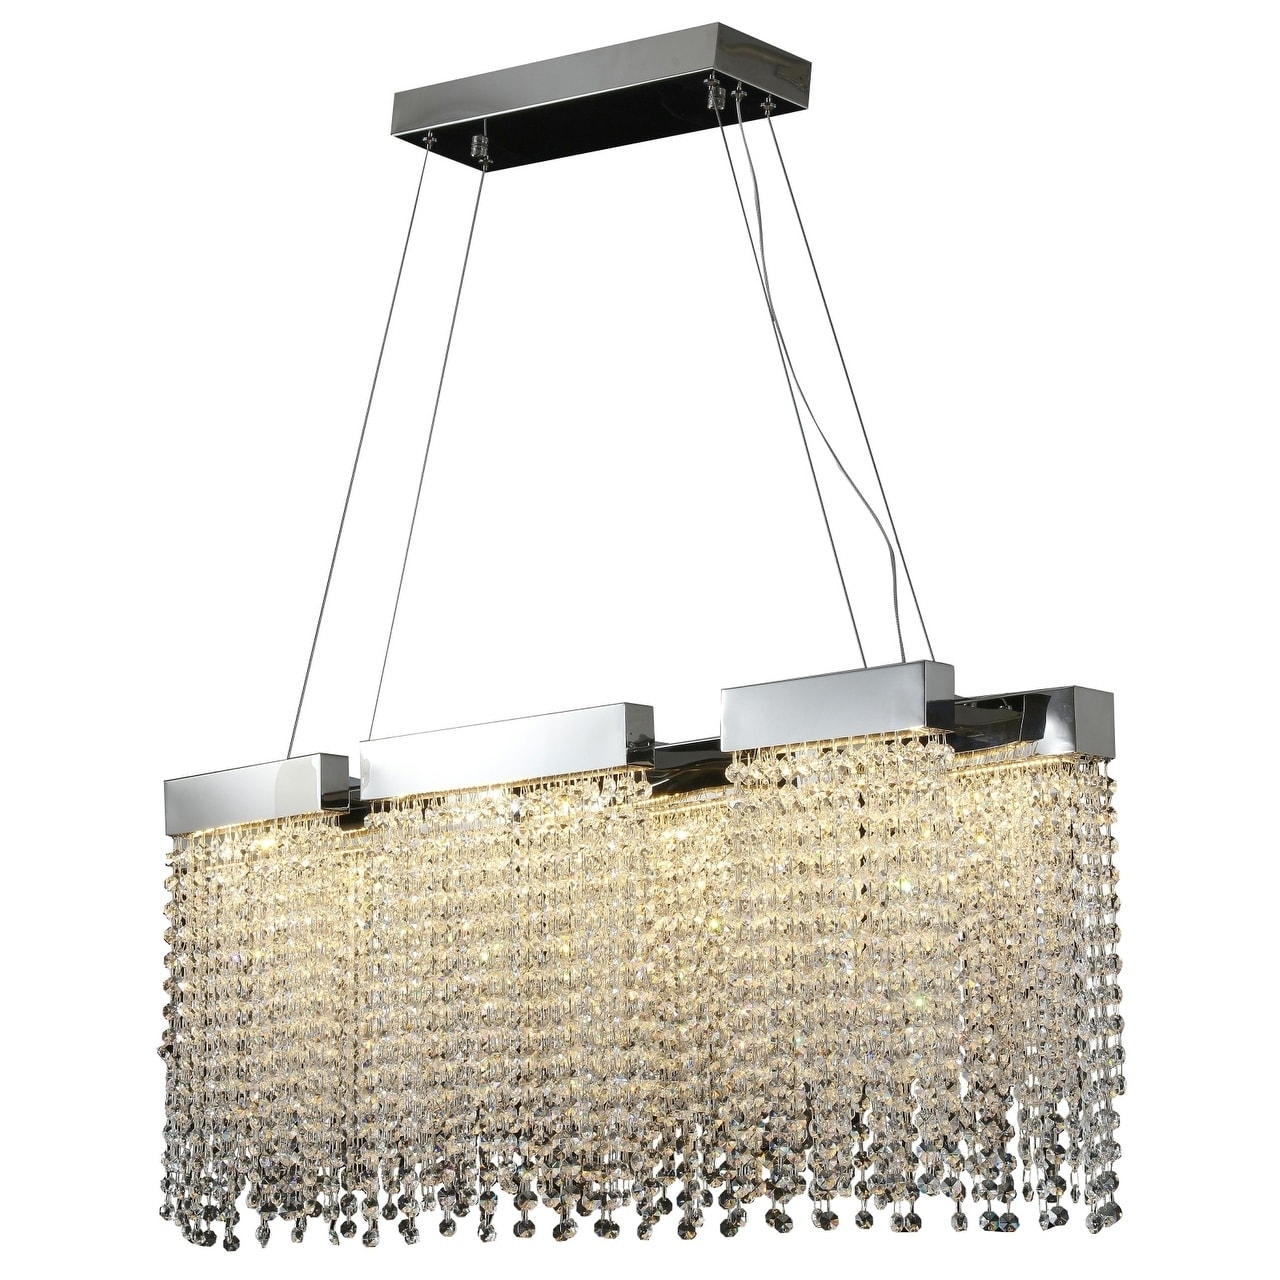 Chrome Metal LED Lighting With Crystal Accents